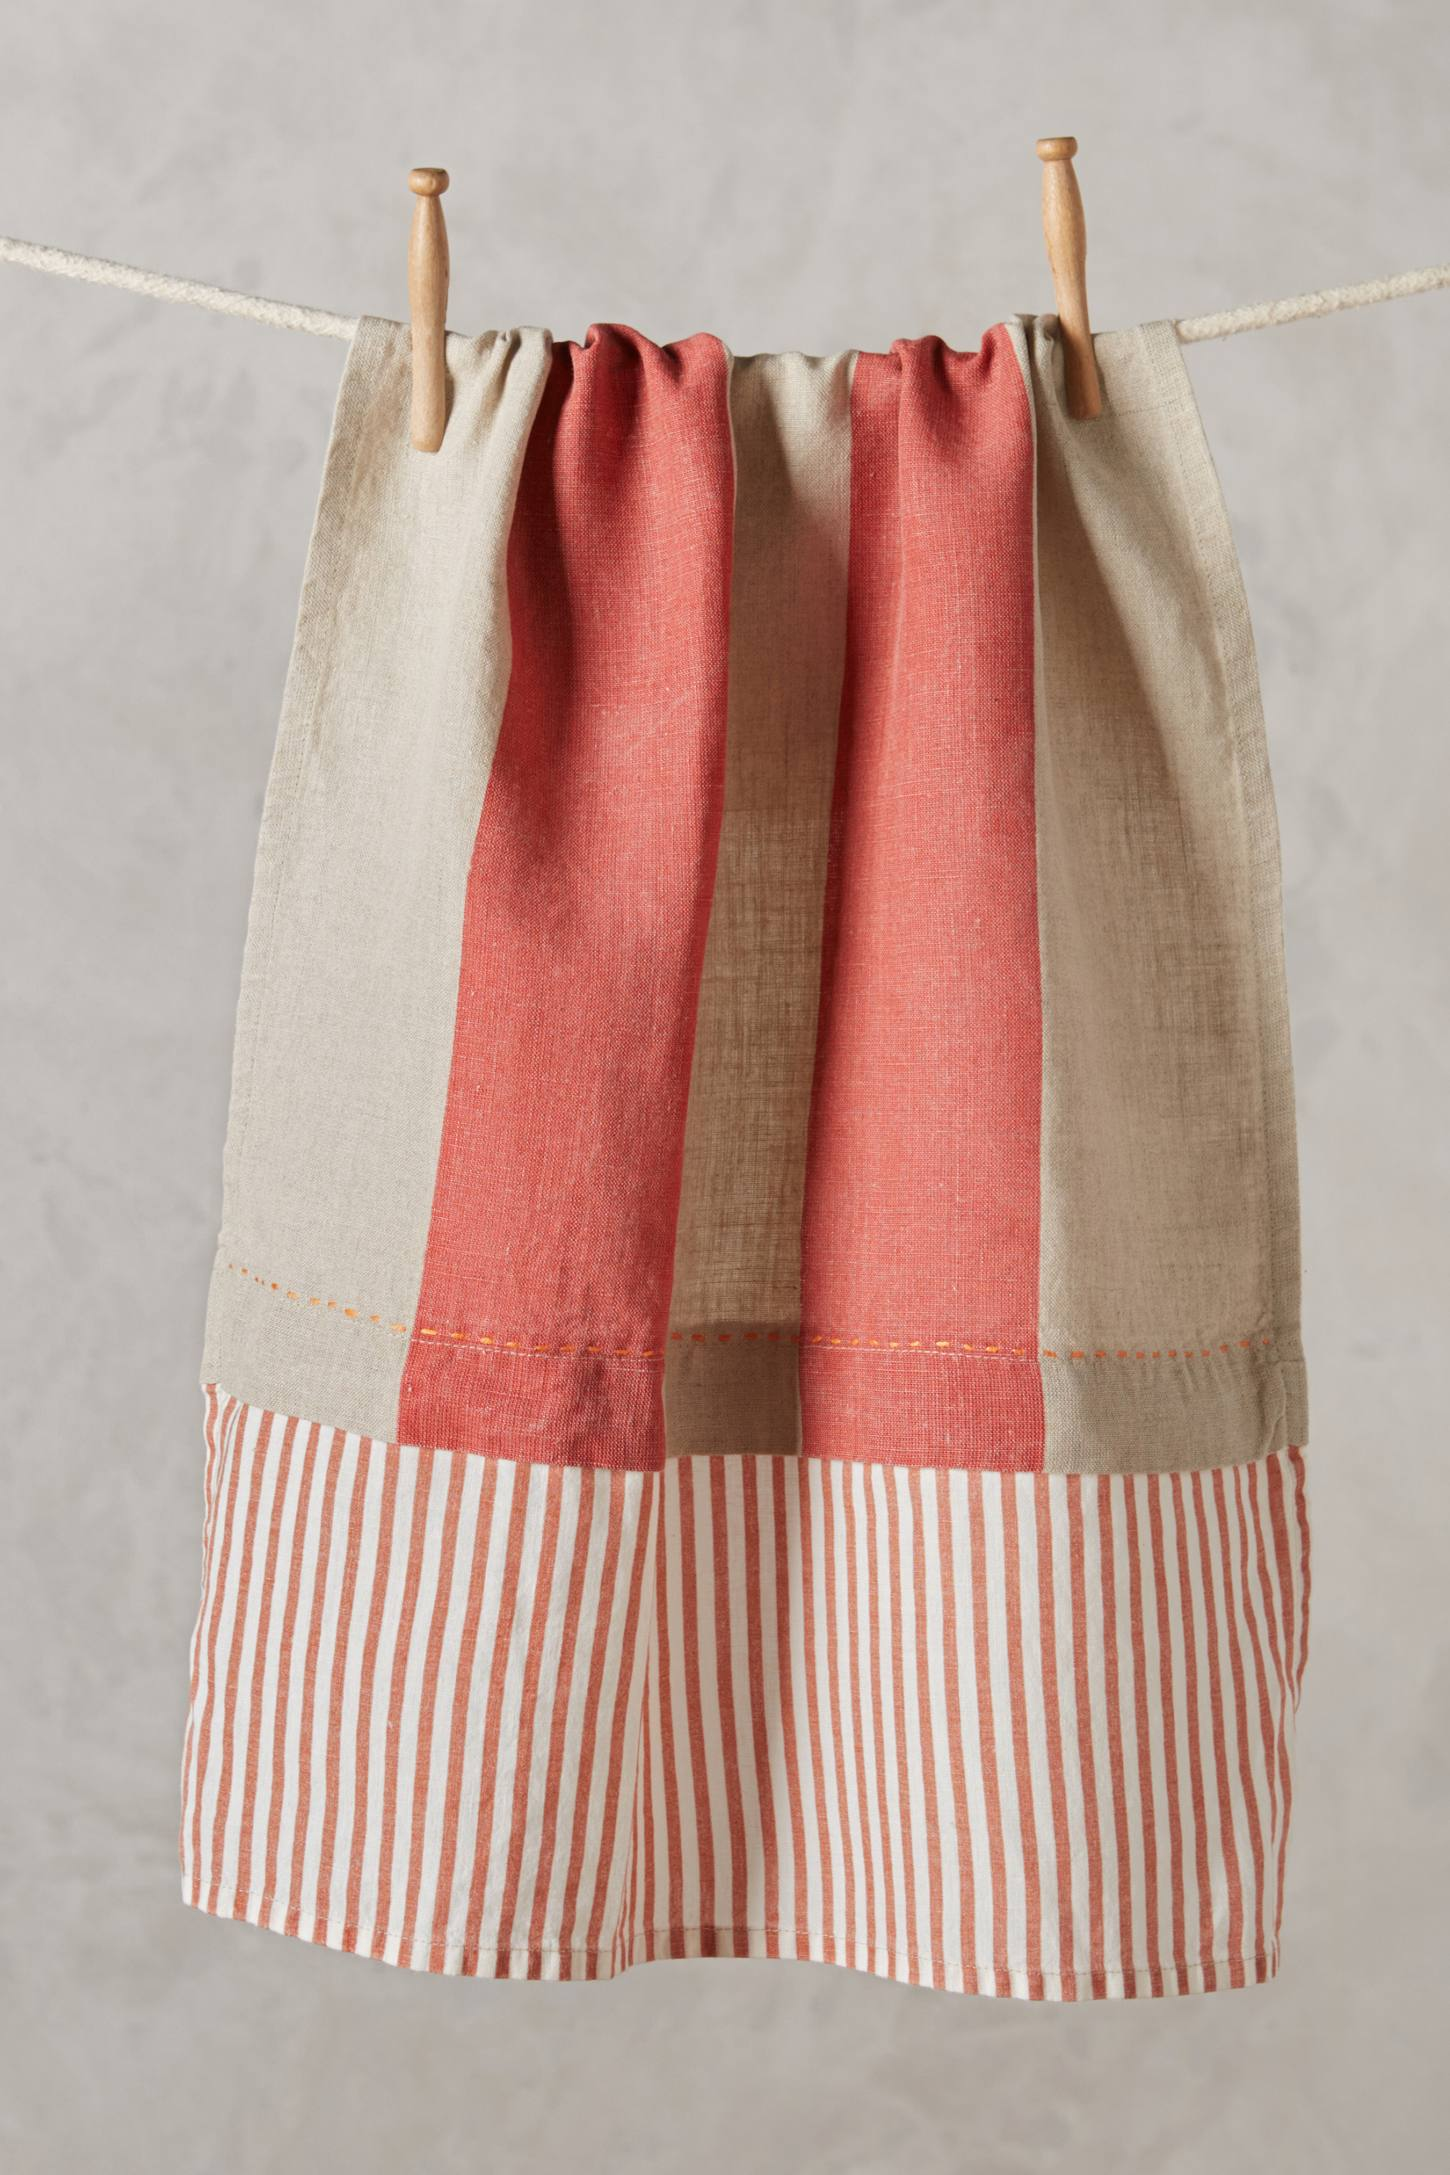 Linen Market Tea Towel